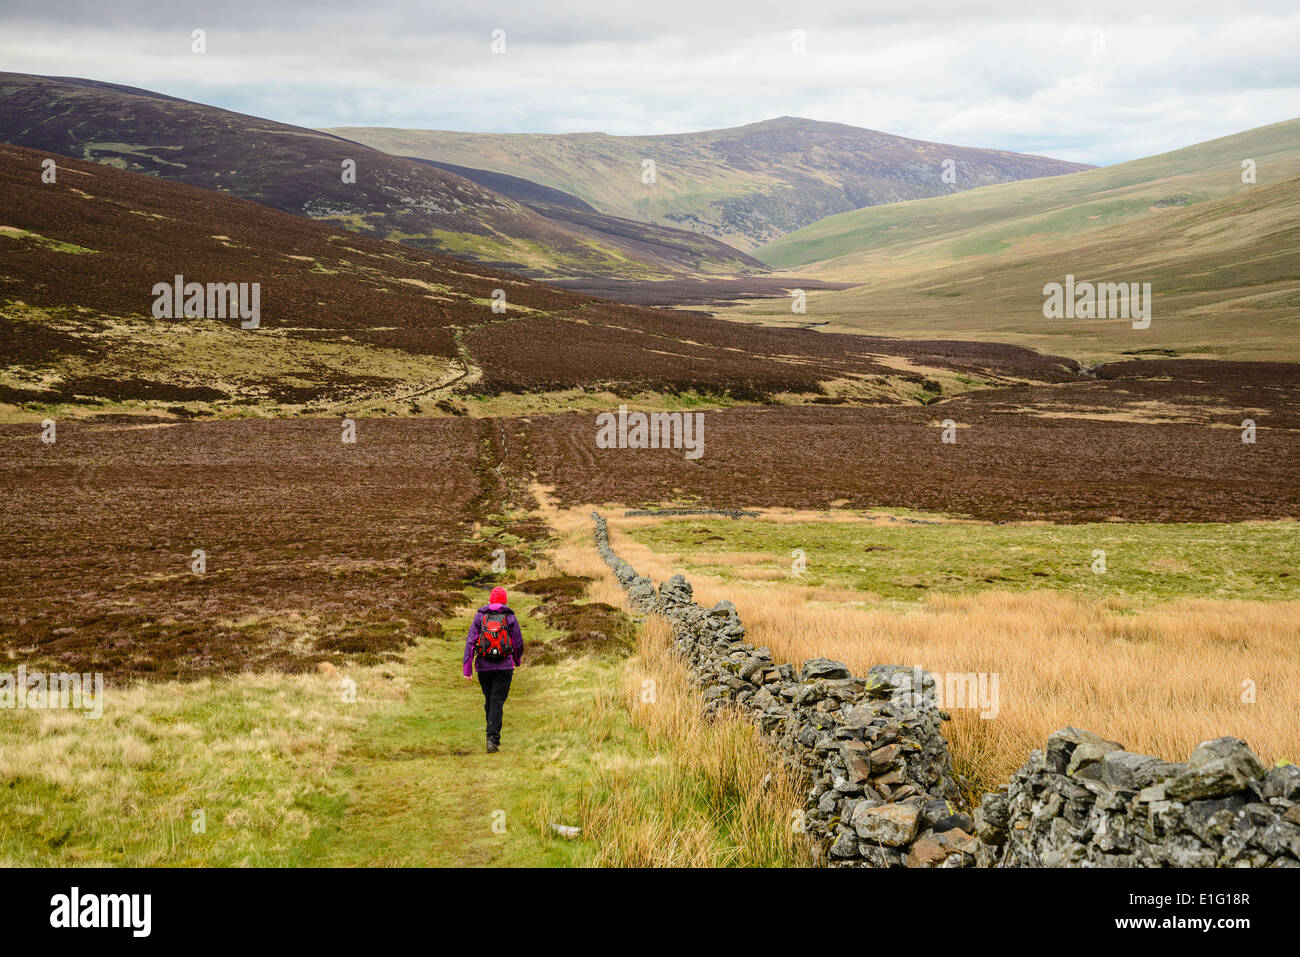 Walker on the Cumbria Way near Skiddaw House in the Northern fells of the Lake District - Stock Image